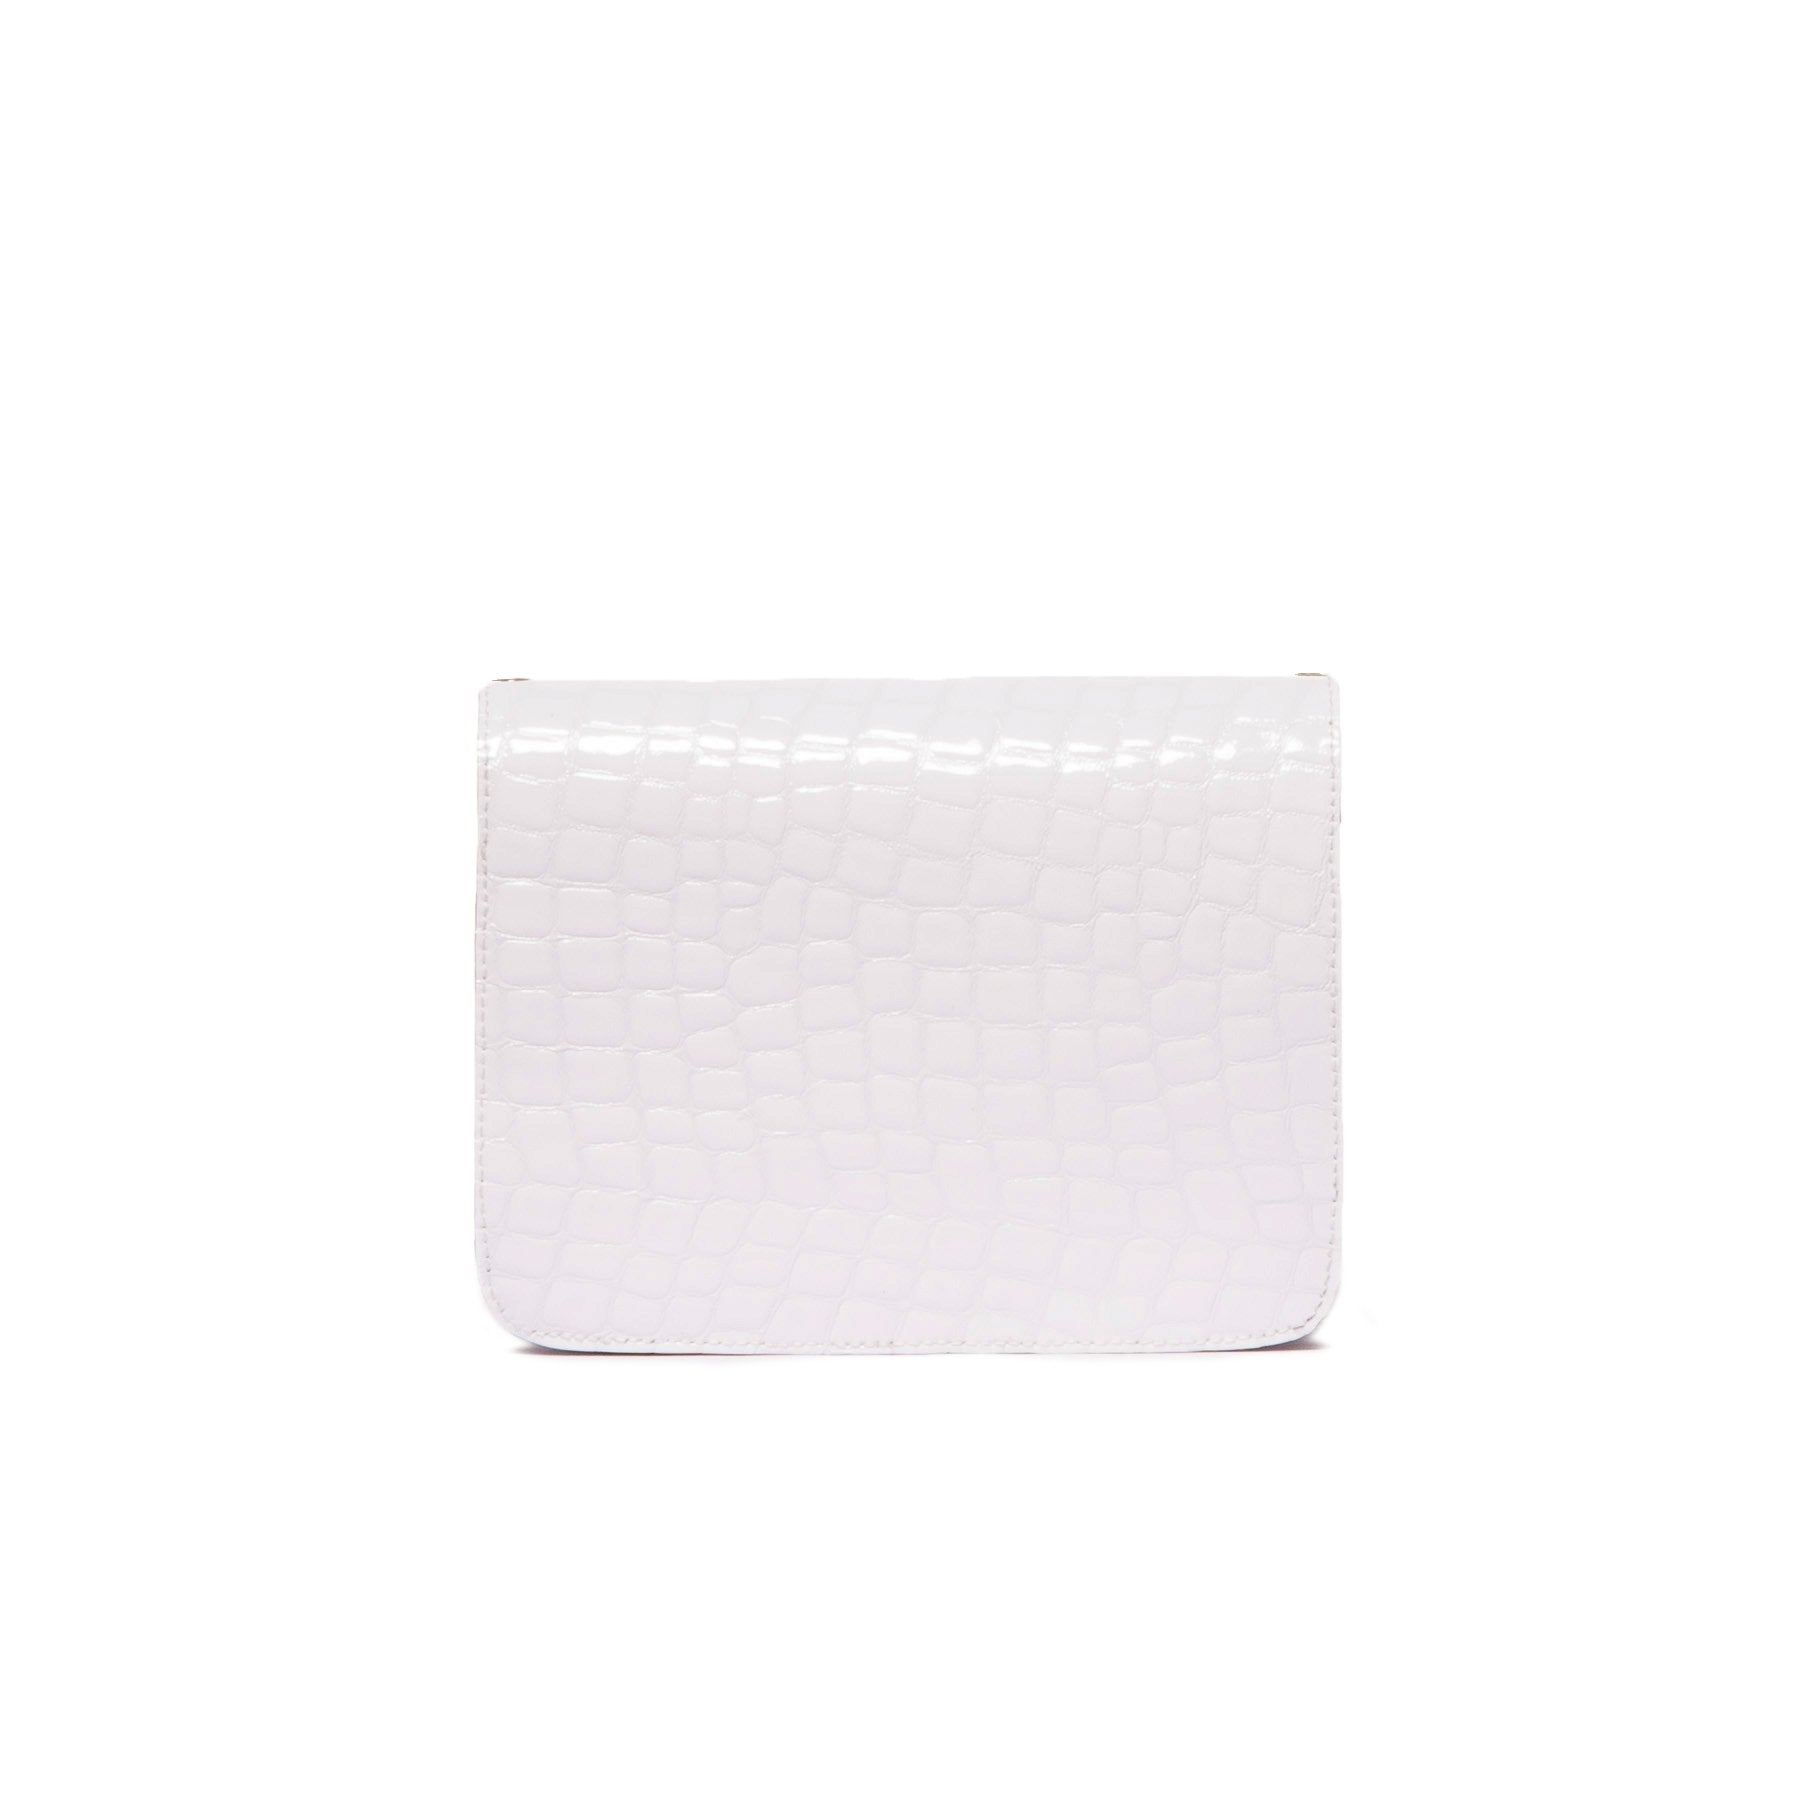 Matine White Croco Mini Bag